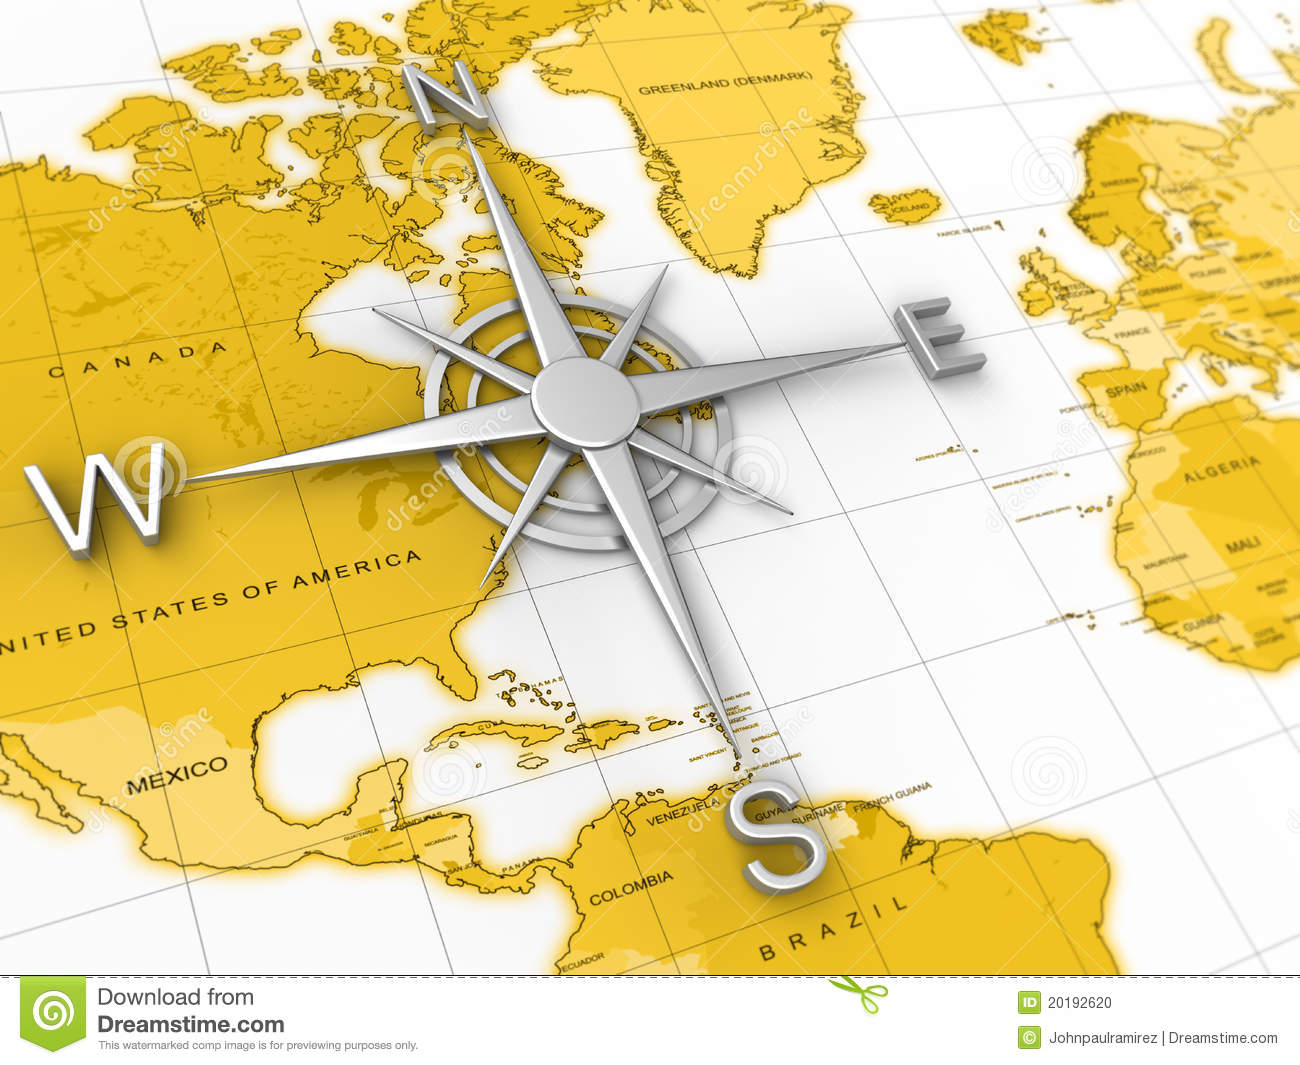 Compass world map travel expedition geography stock compass world map travel expedition geography gumiabroncs Gallery